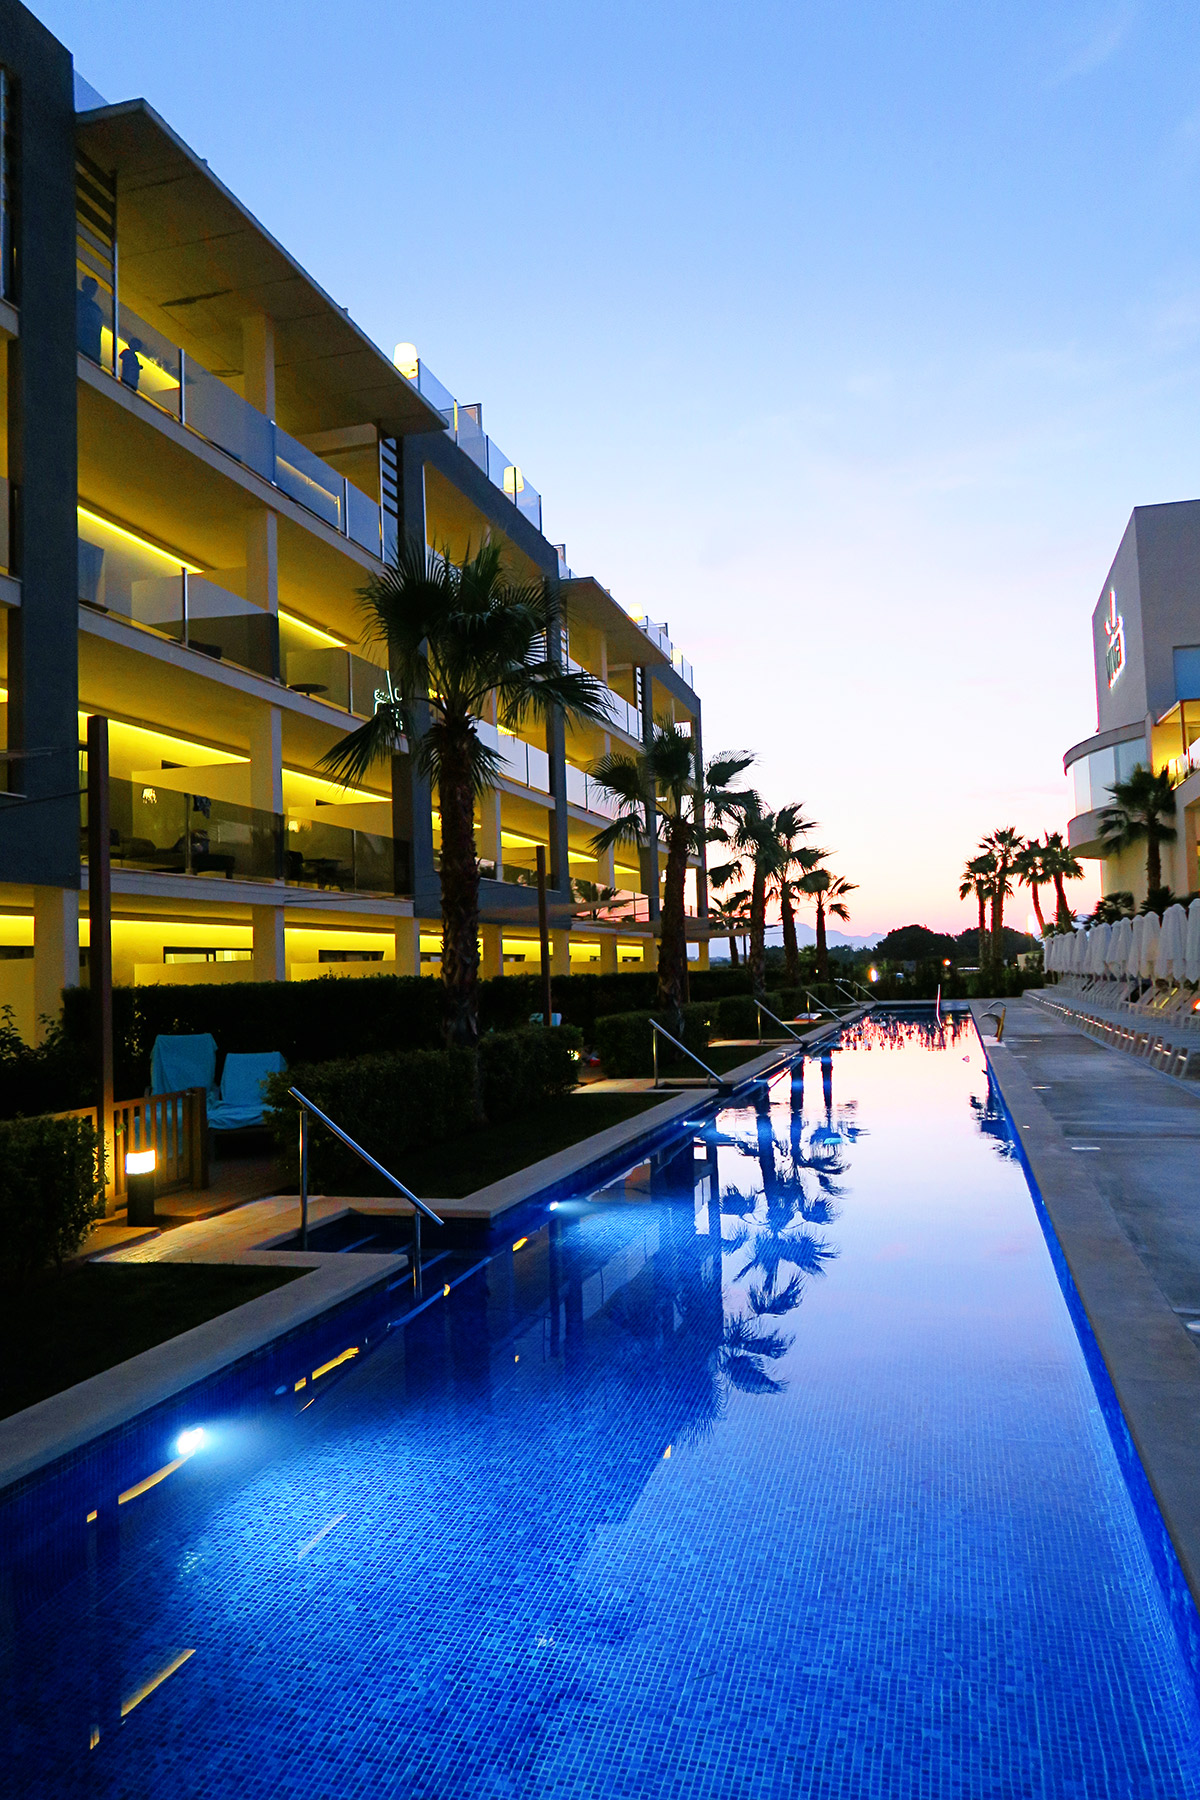 Viva Zafiro Alcudia Hotel & Spa with Sovereign- A Review